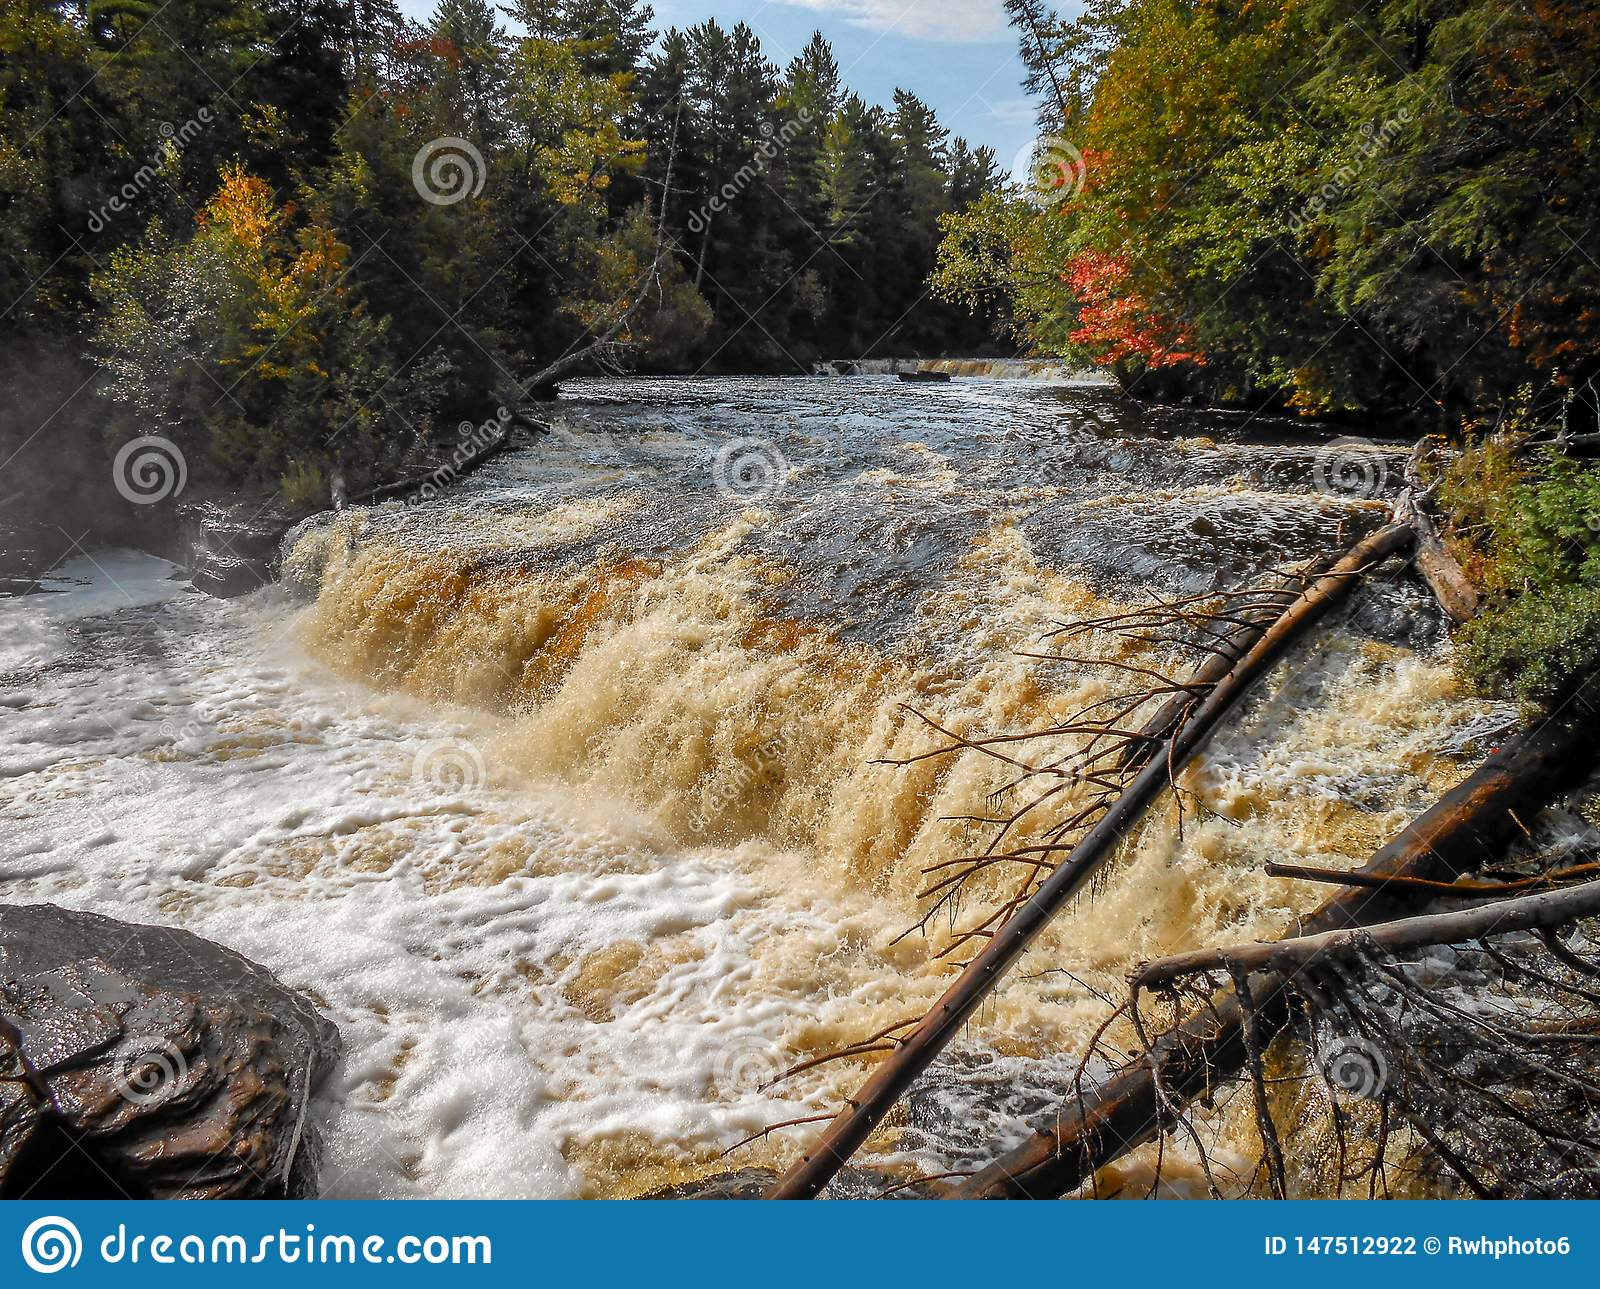 Tahquamenon Falls in the UP of Michigan